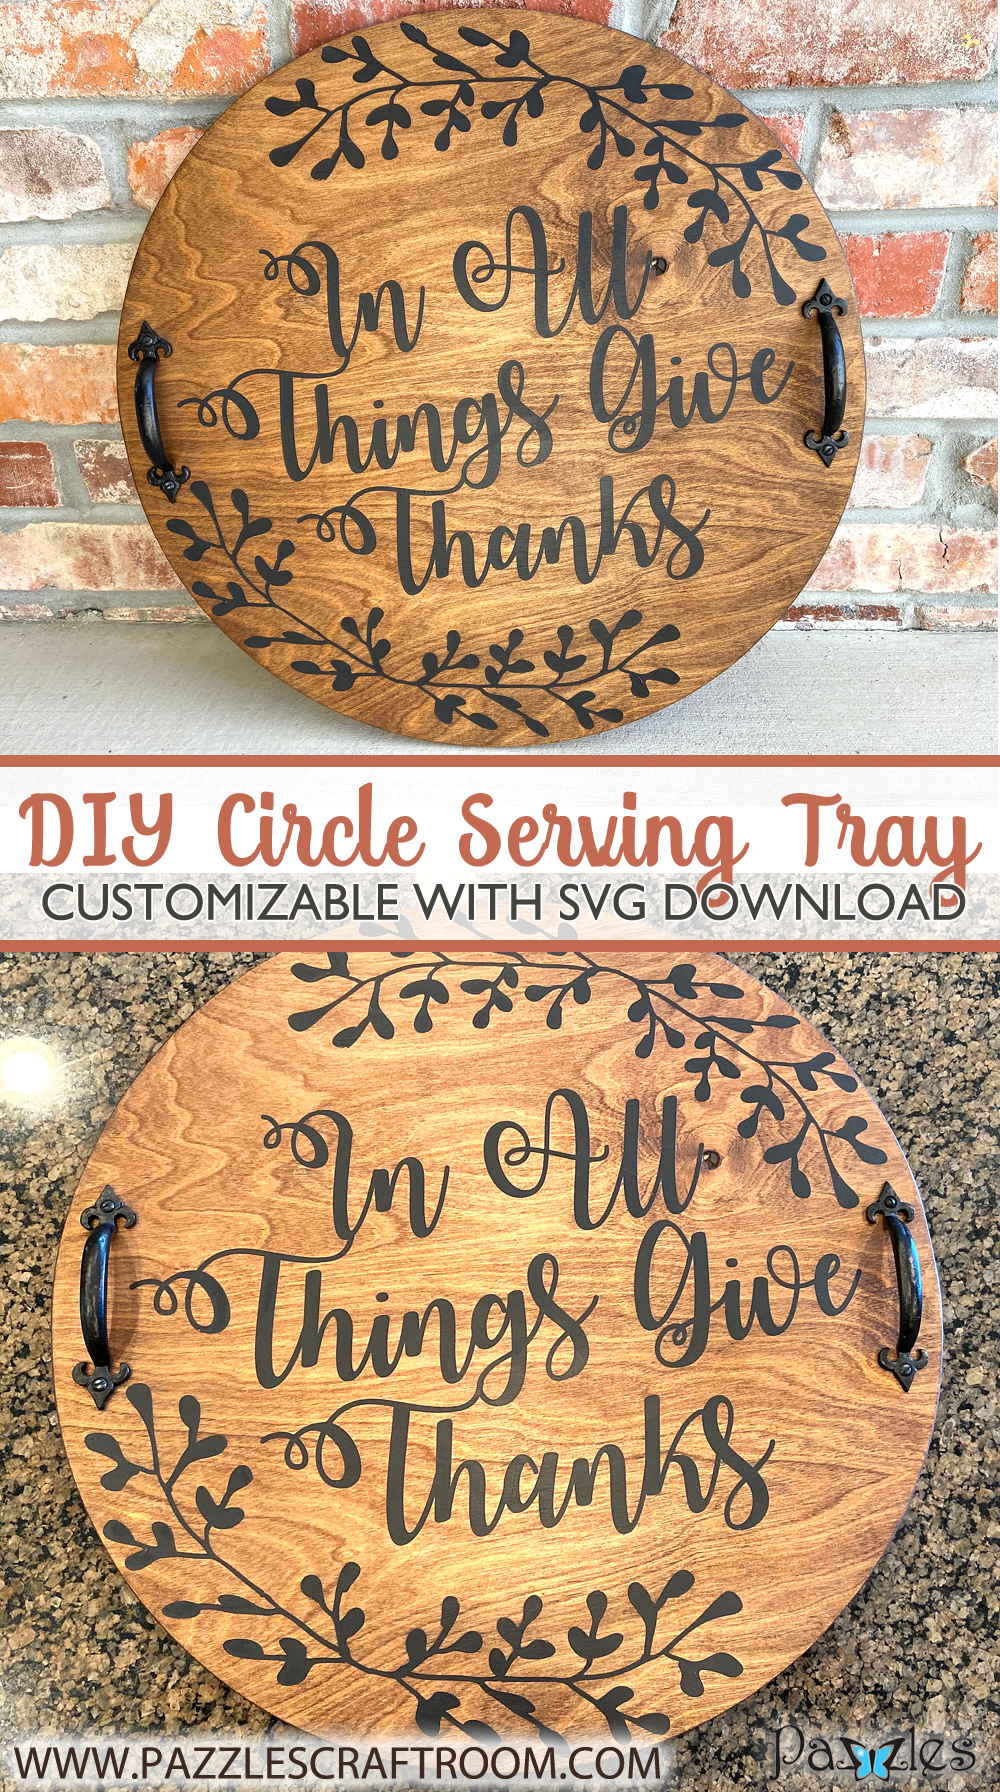 Pazzles DIY Circle Serving Tray with SVG instant download. Compatible with all major electronic cutters including Pazzles Inspiration, Cricut, and Silhouette Cameo.